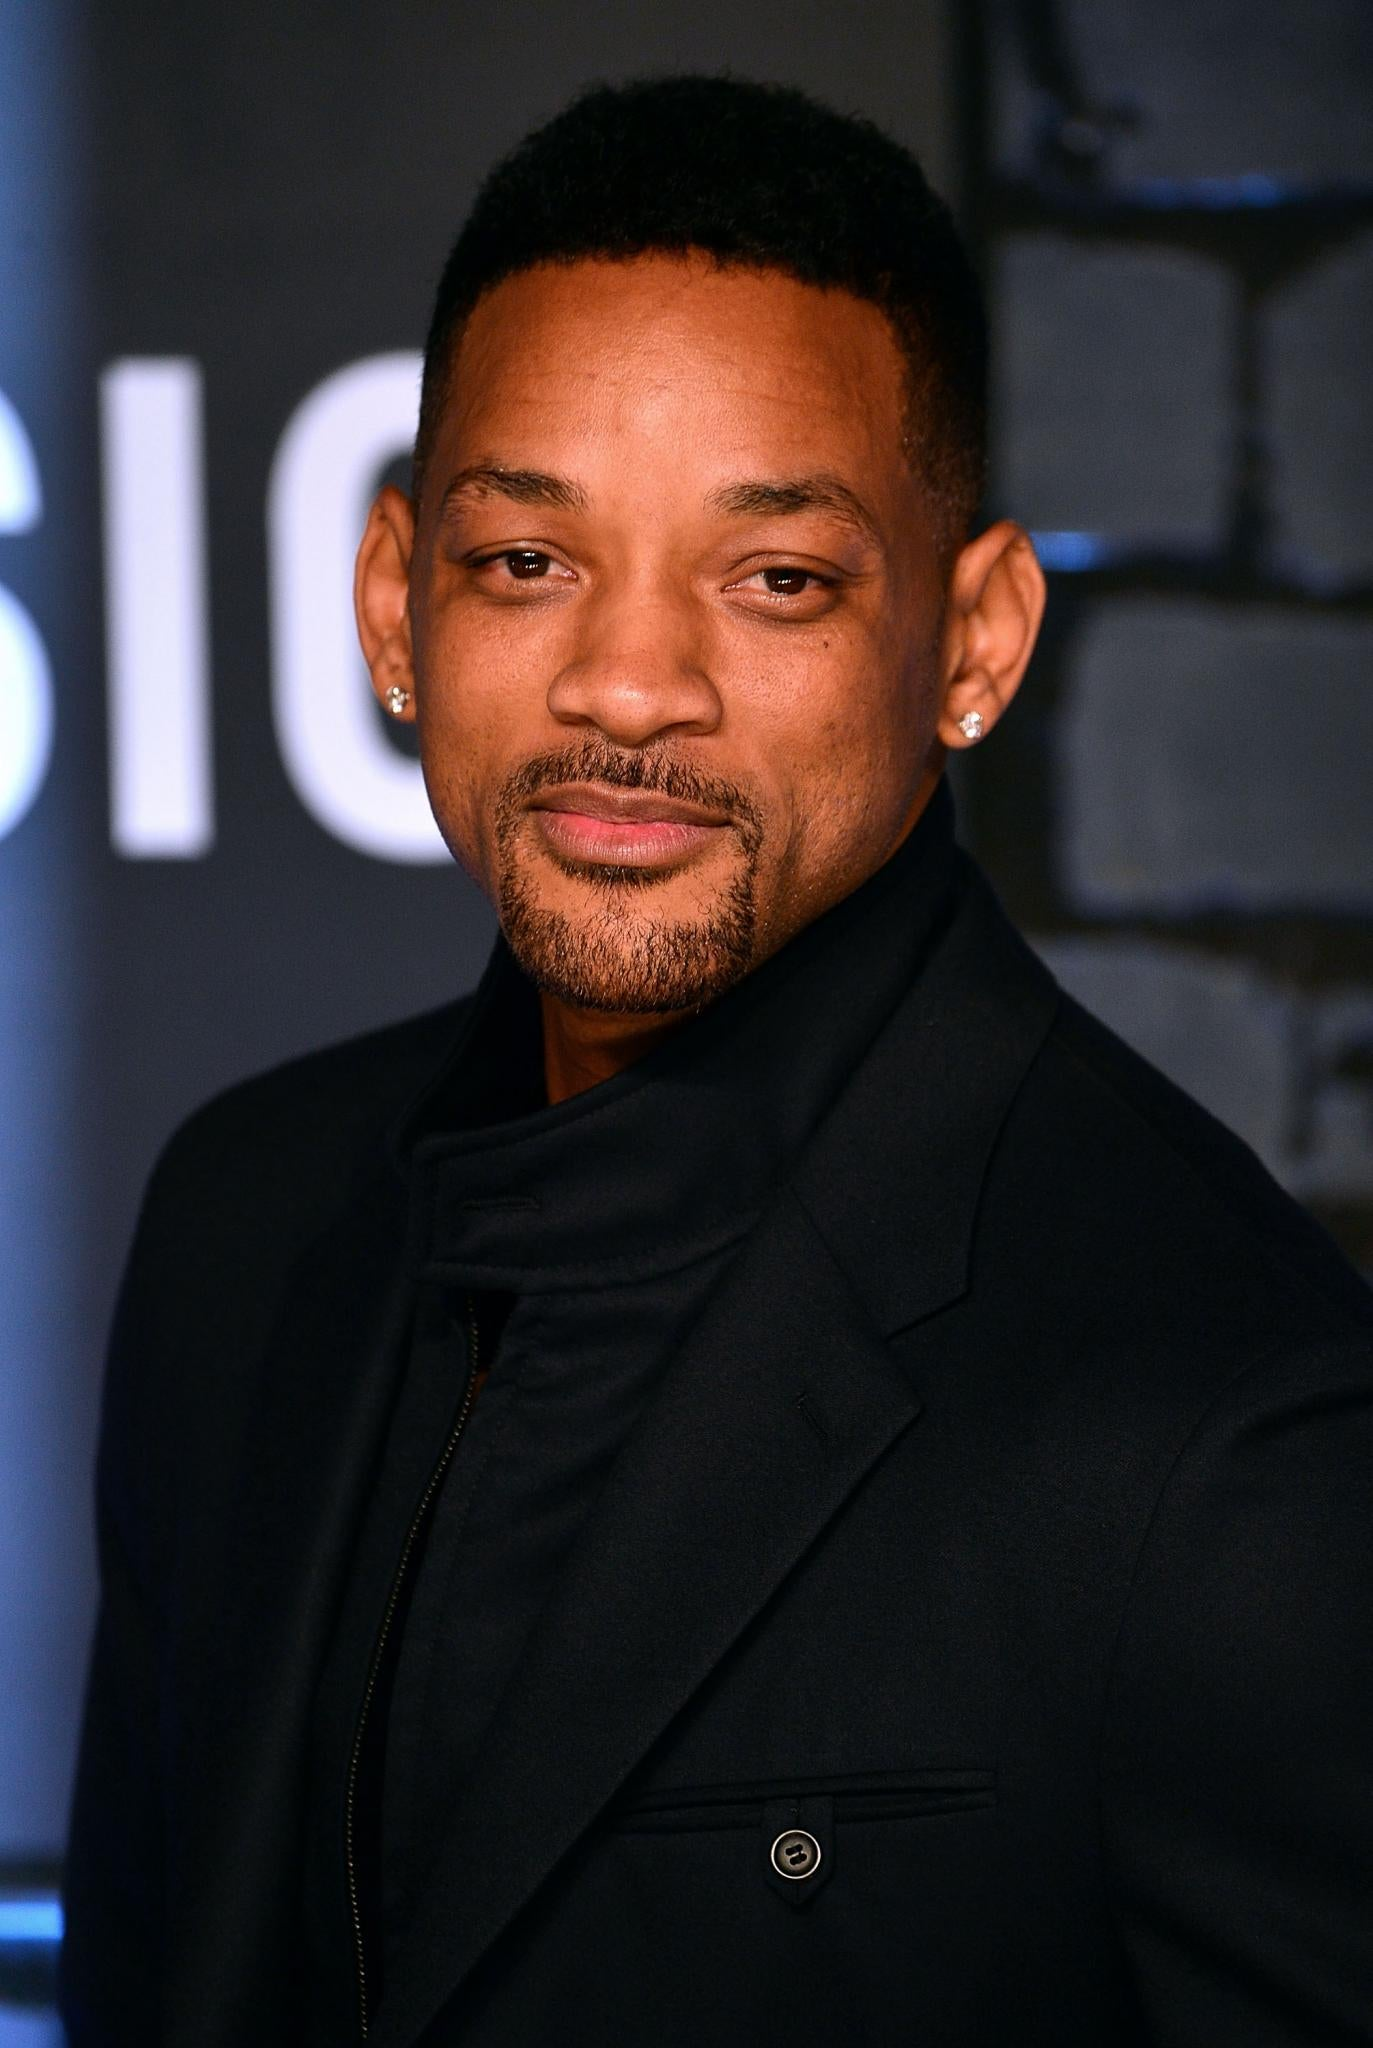 Report: Will Smith in Talks to Develop New Year's Eve Special